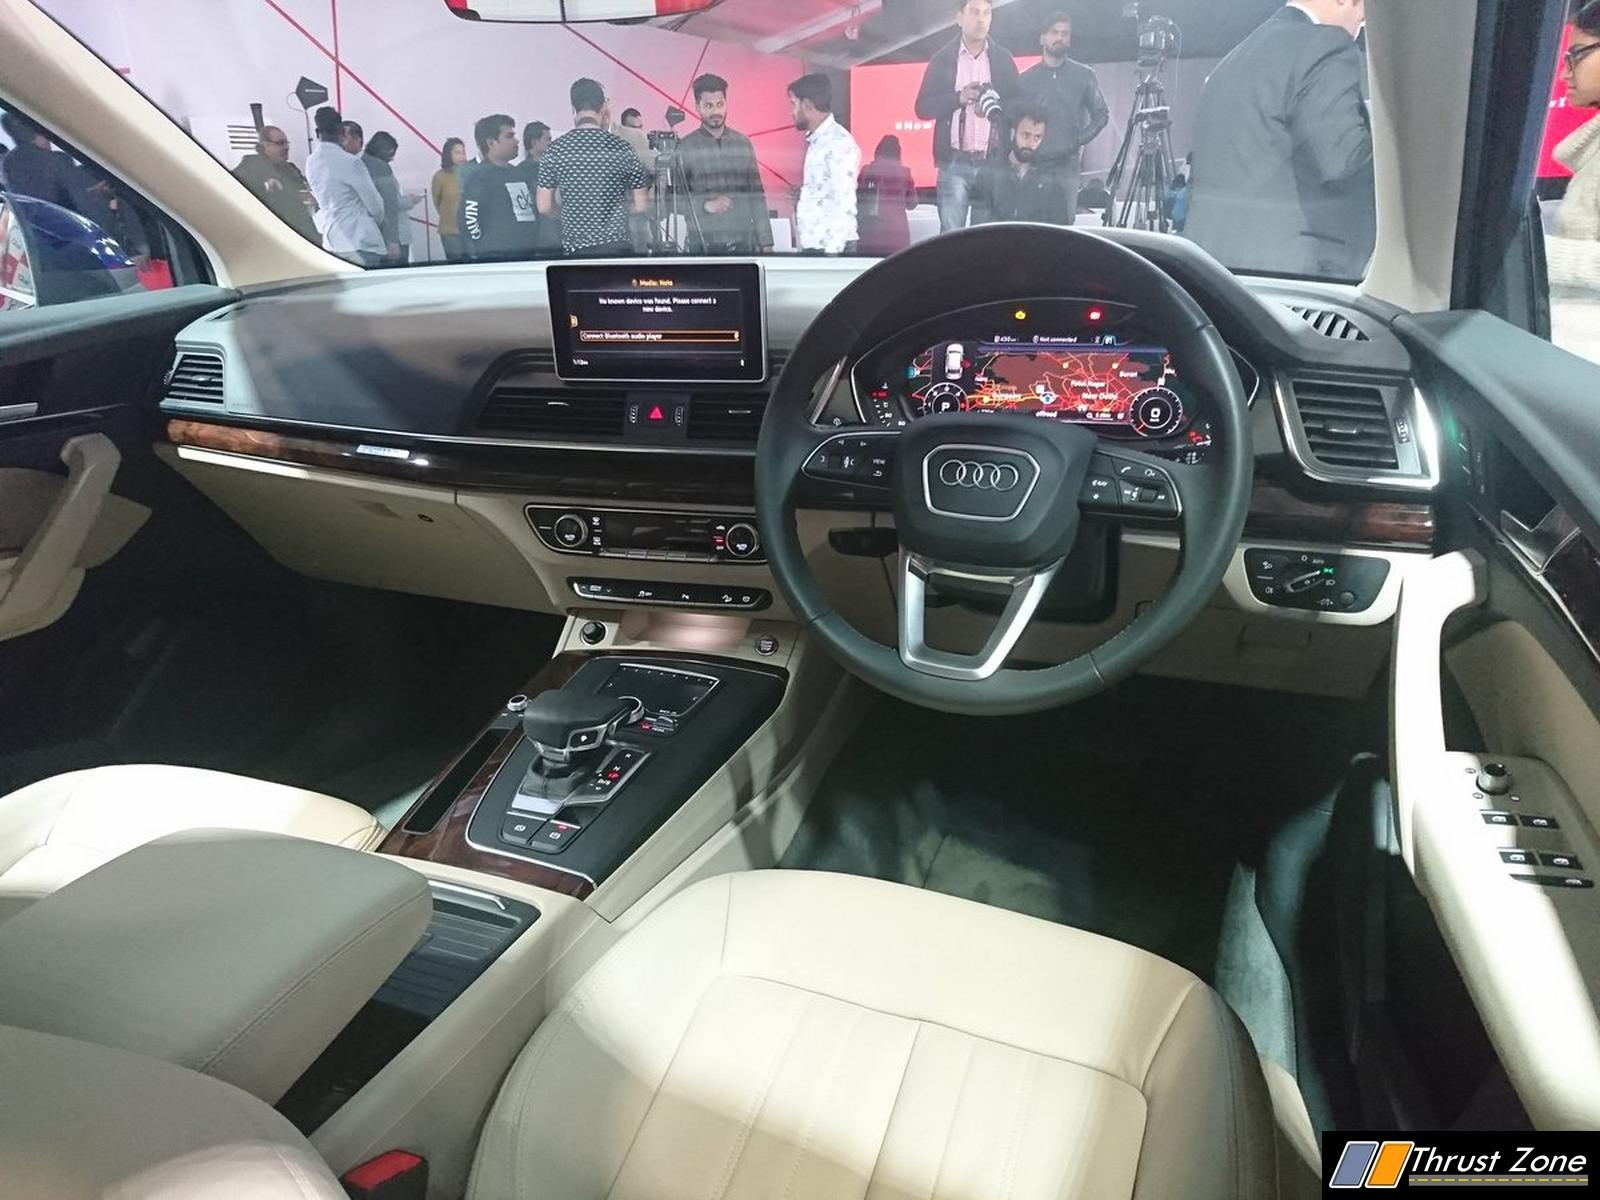 https://www.thrustzone.com/wp-content/uploads/2016/09/Second-Generation-2017-Audi-Q5-Launched-in-India-7.jpg